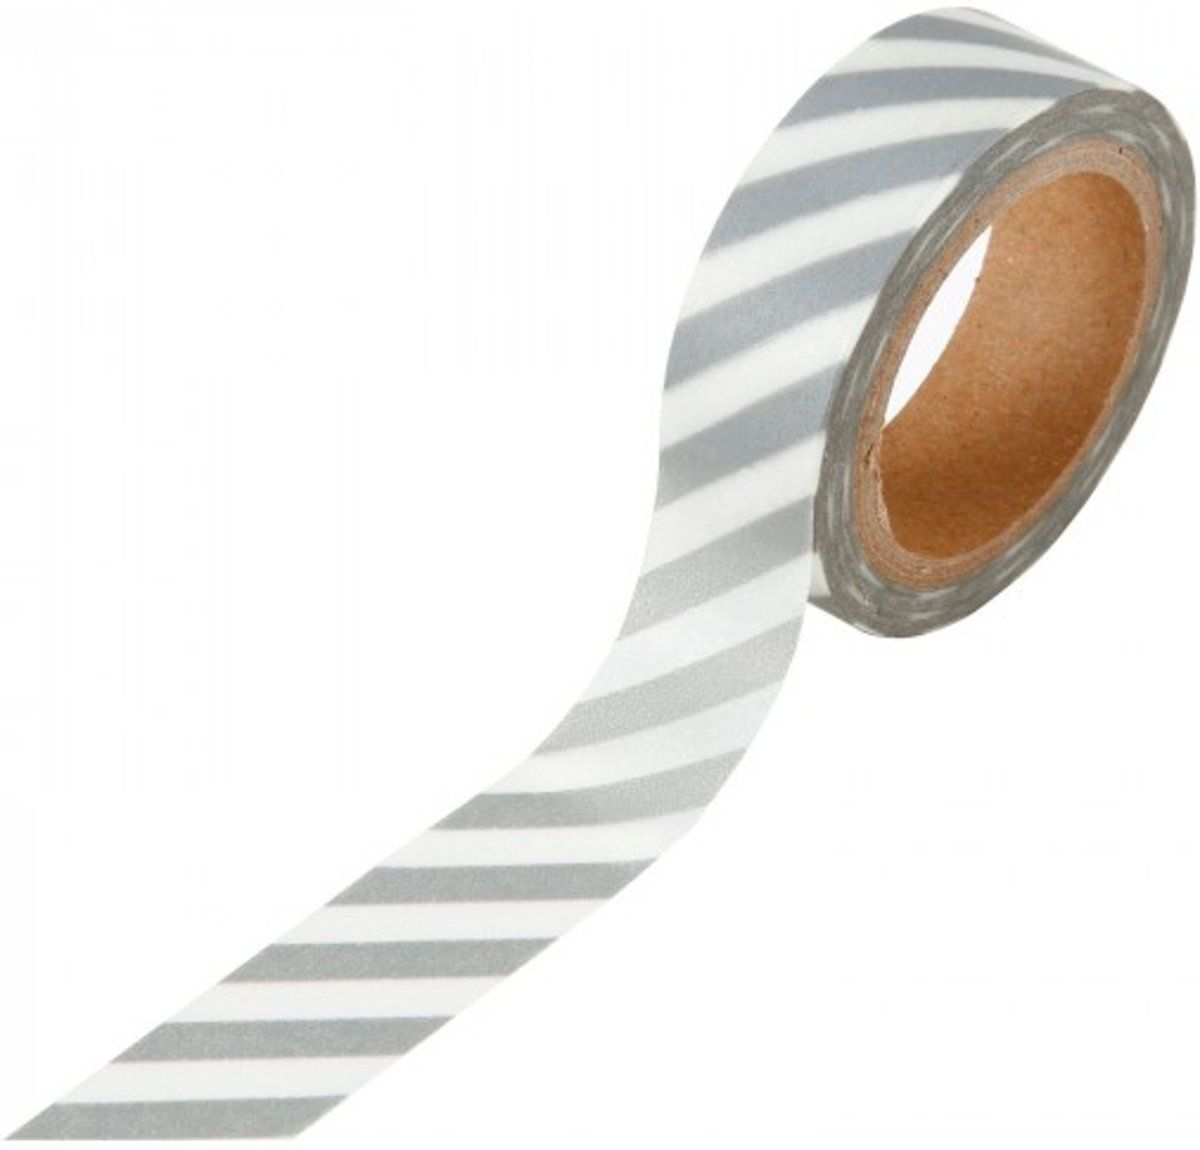 Washi tape 15mm x 8m white with silver